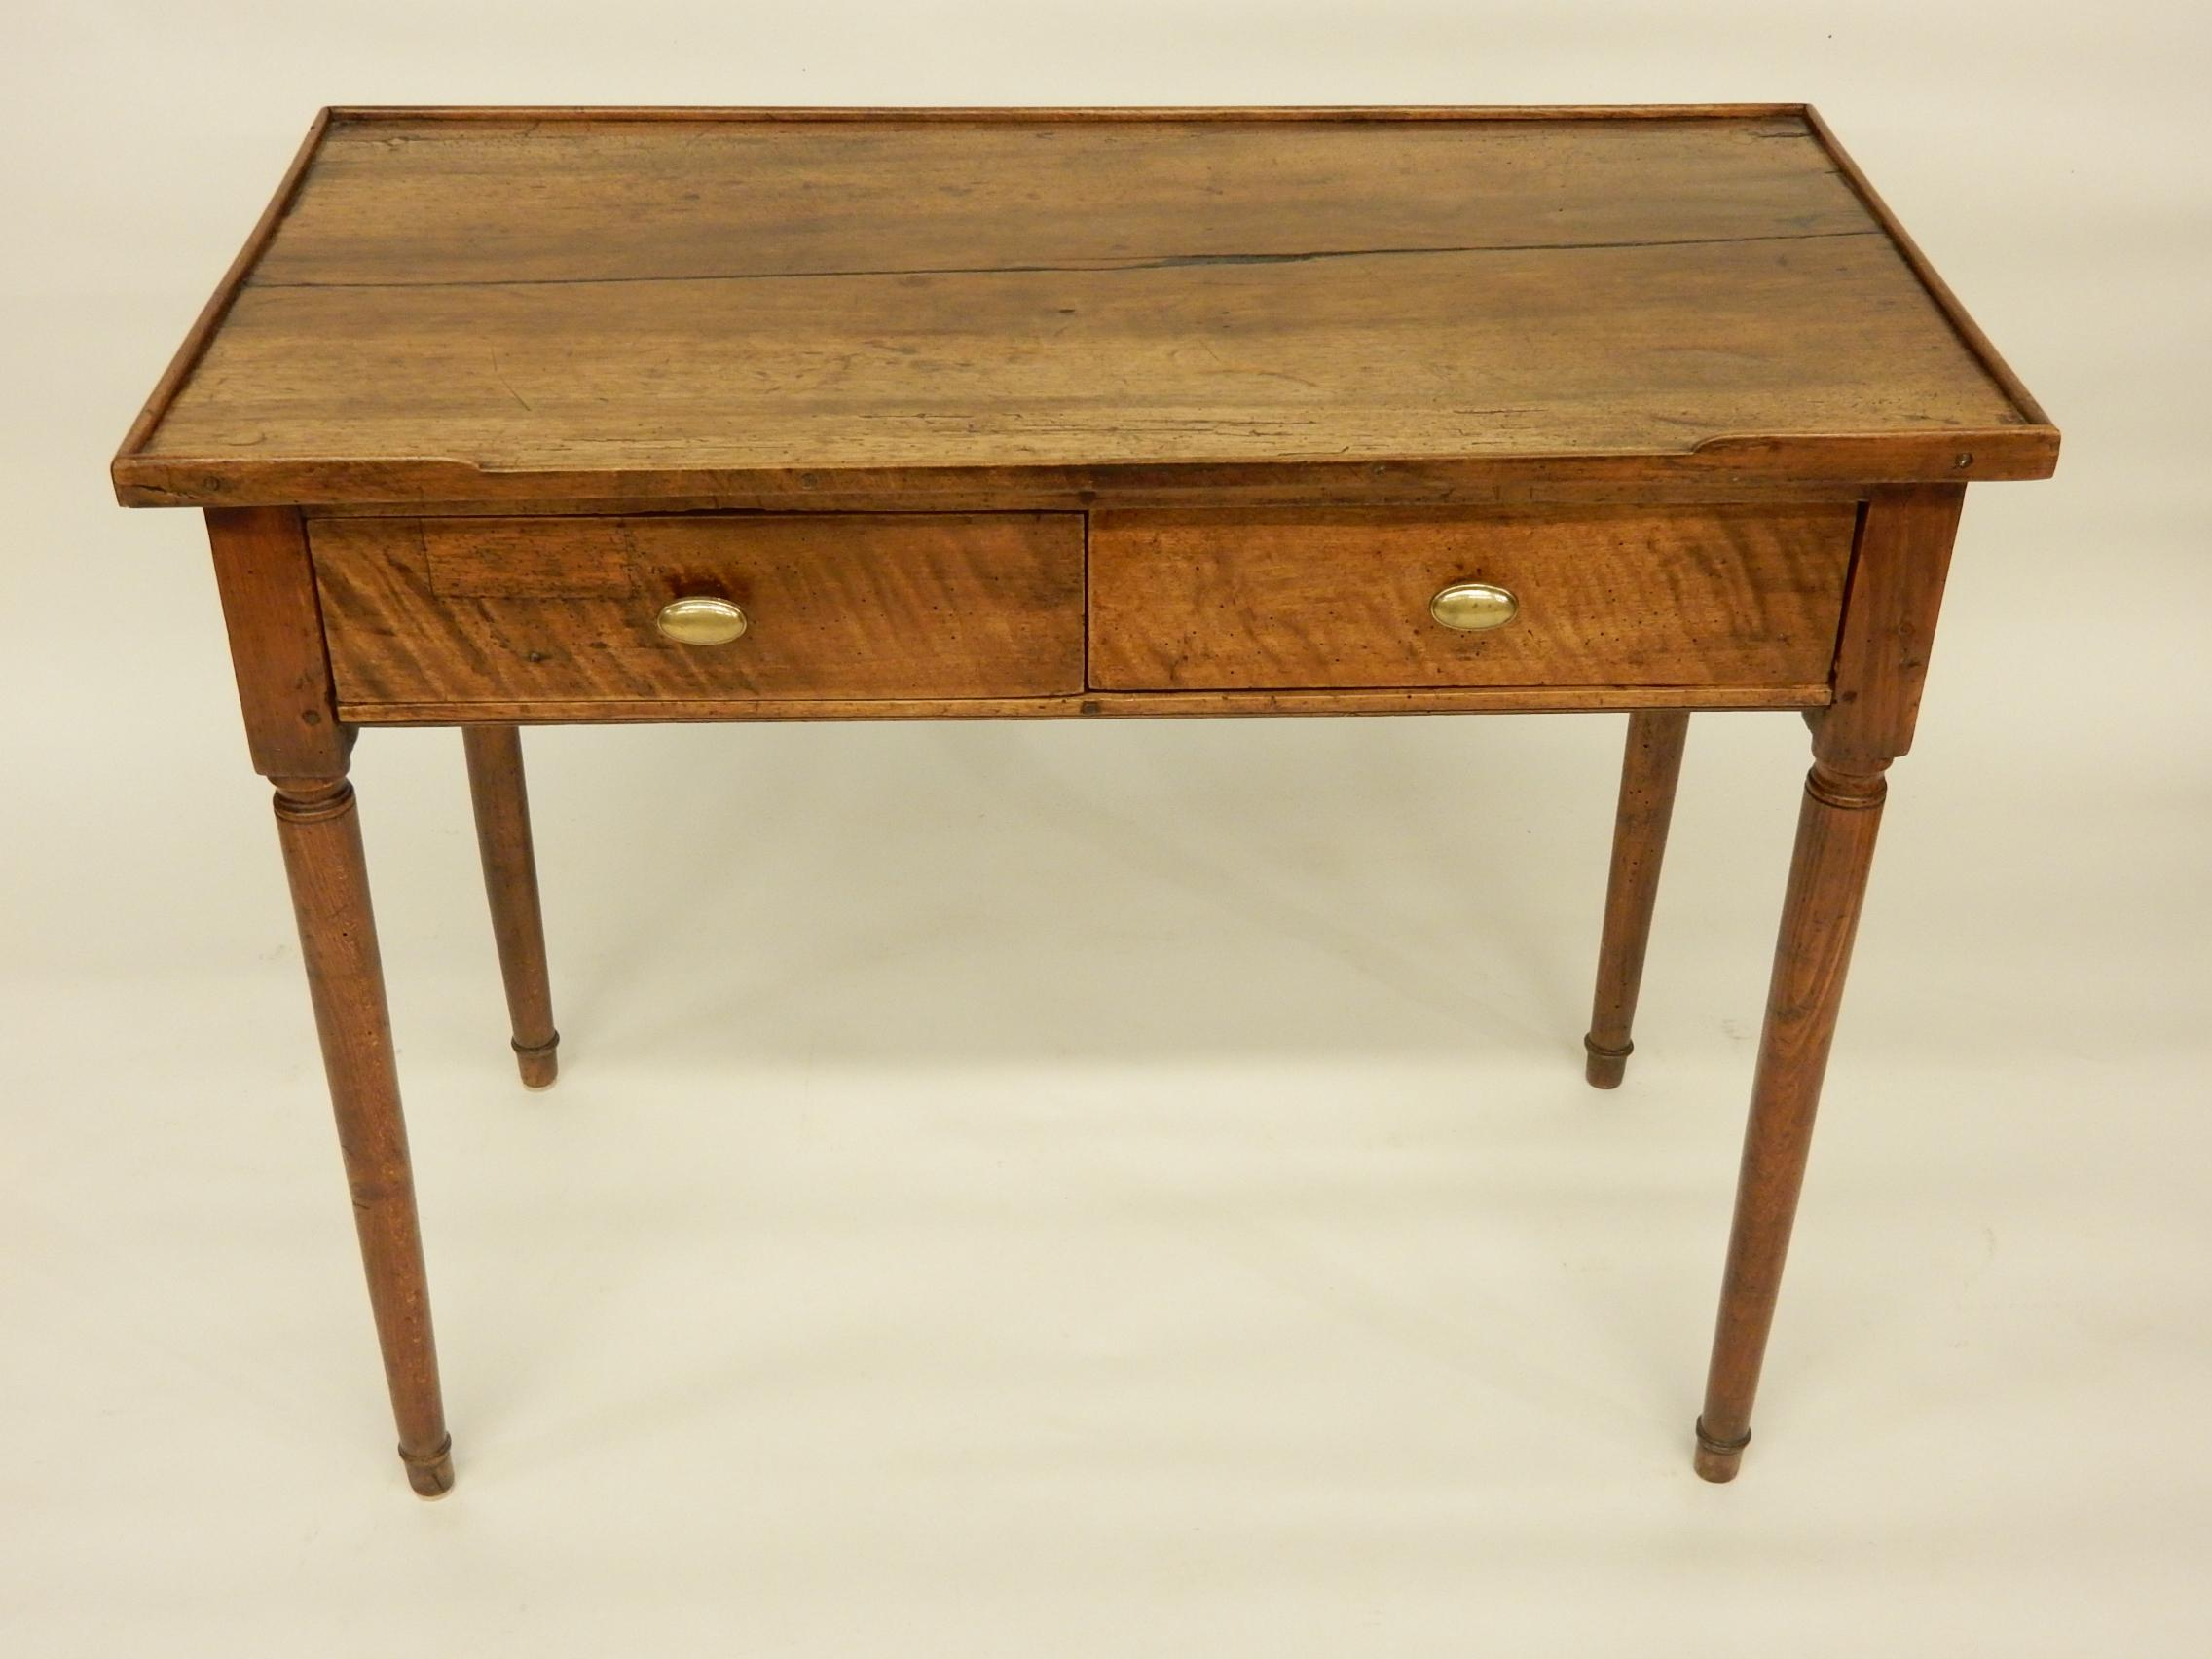 18th C. French Provincial Walnut Side Table